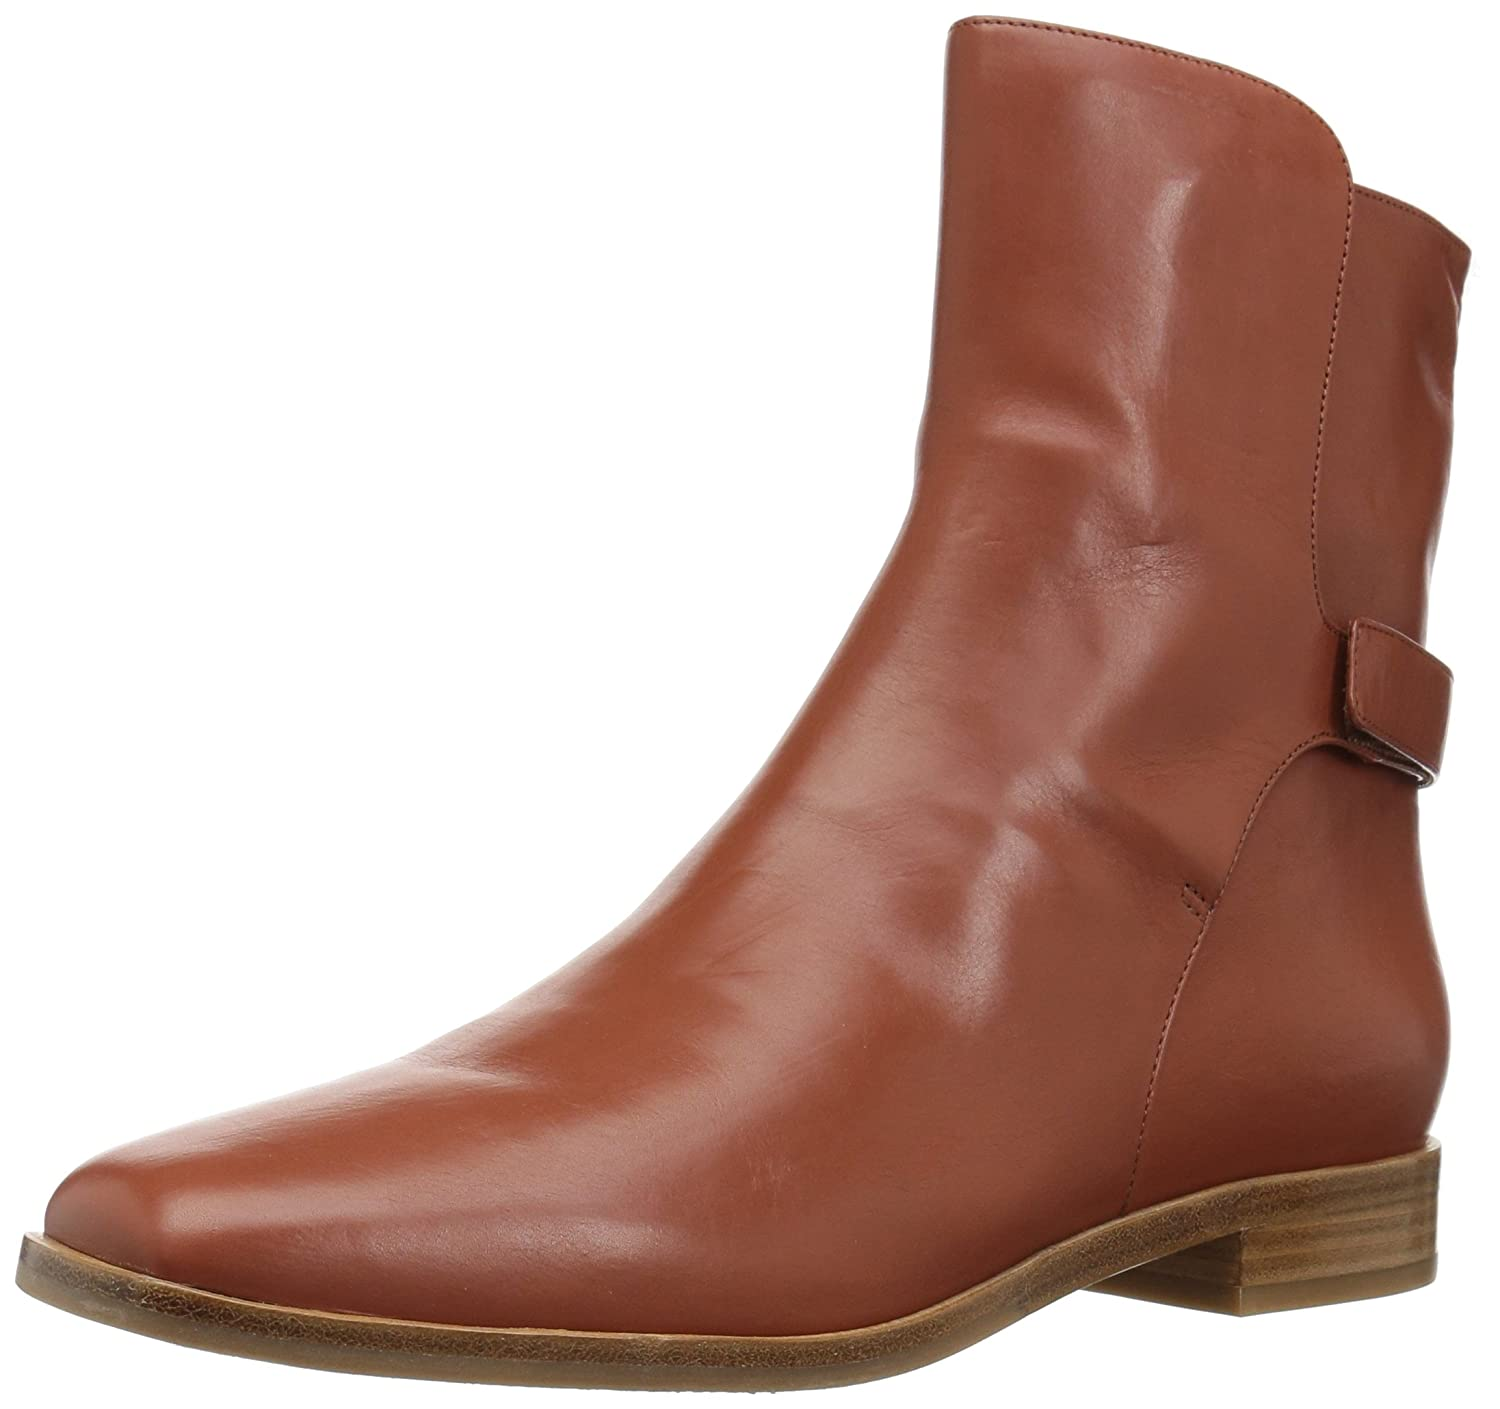 Via Spiga Women's Vaughan Ankle Boot B06XGRNCR6 11.5 B(M) US|Chestnut Leather